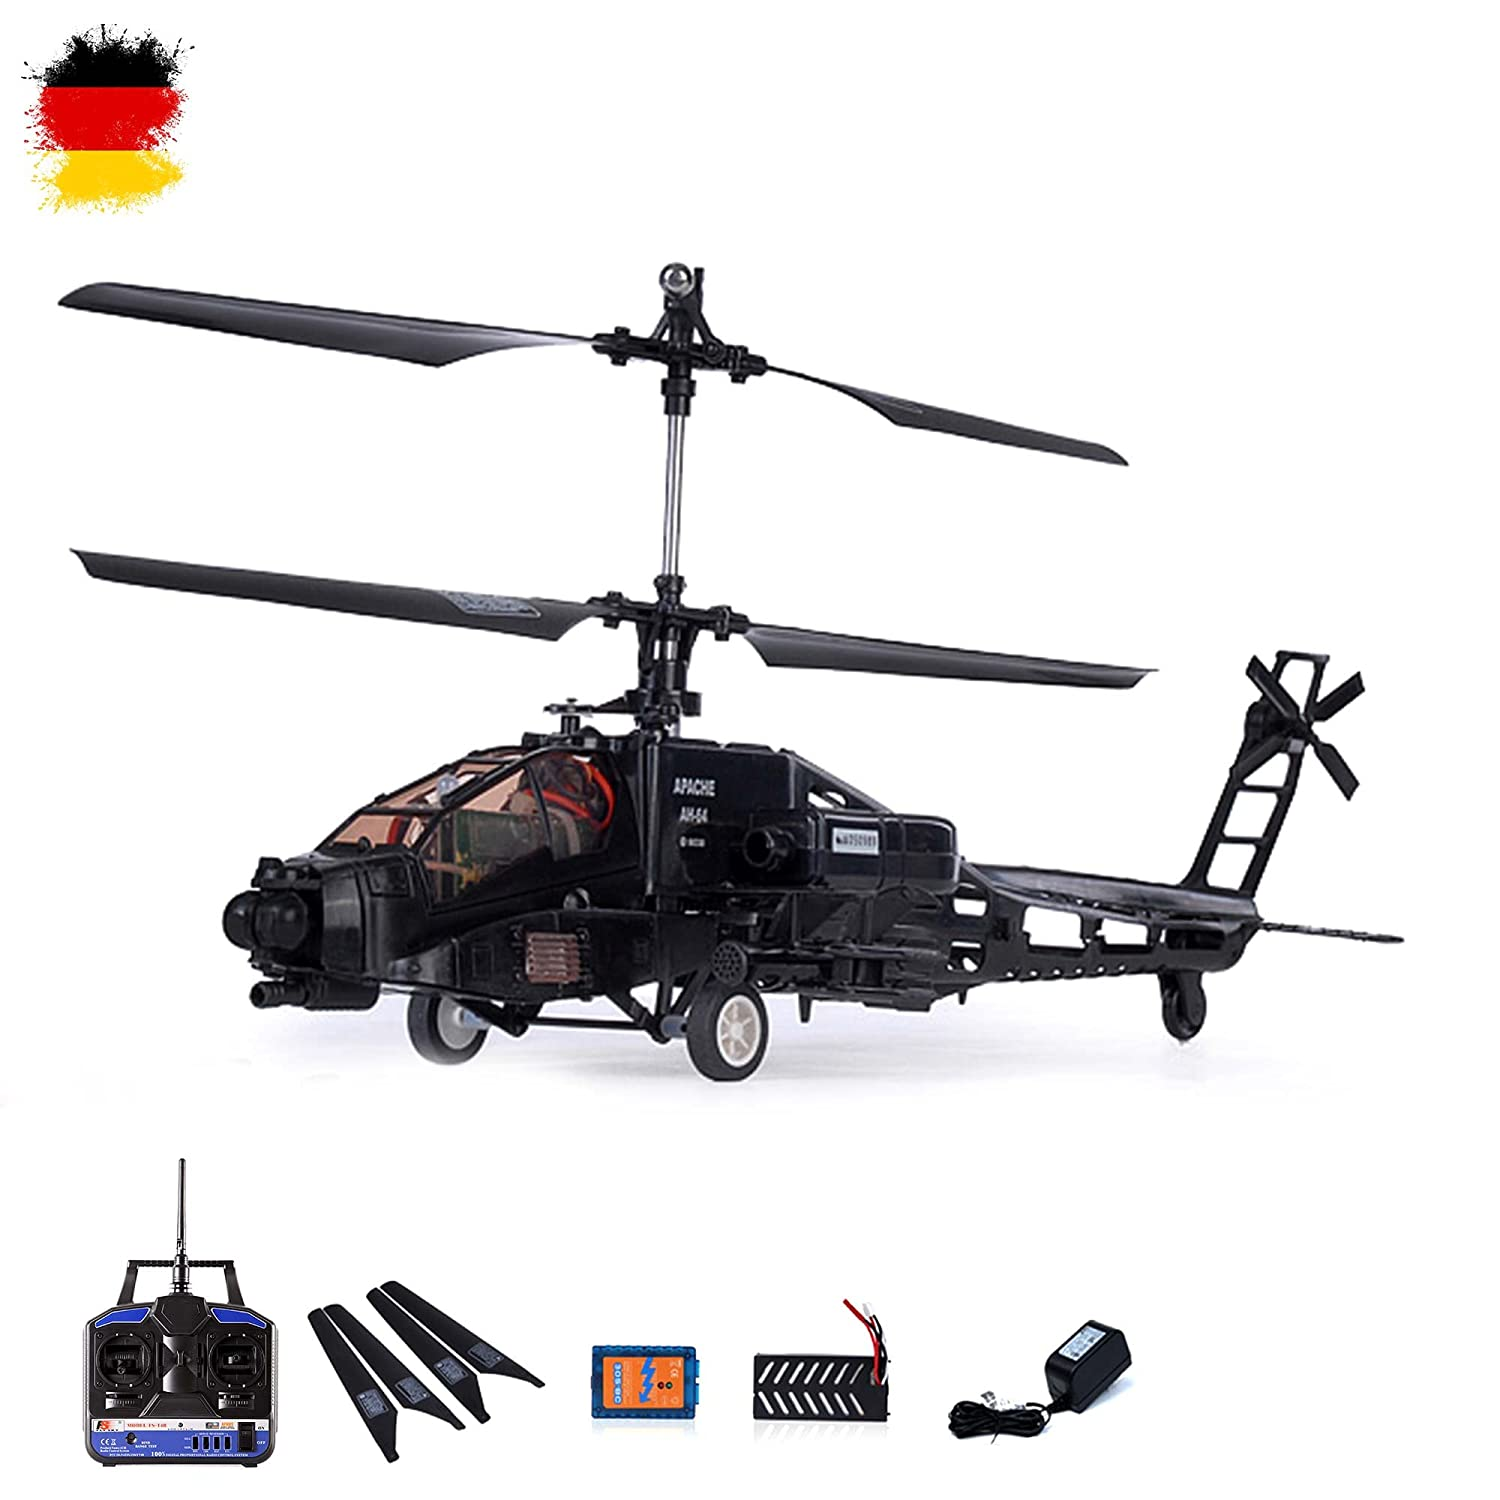 4 Kanal Apache AH-64 RC ferngesteuerter Hubschrauber Helikopter-Modell mit Gyro-Technologie! Ready-to-Fly